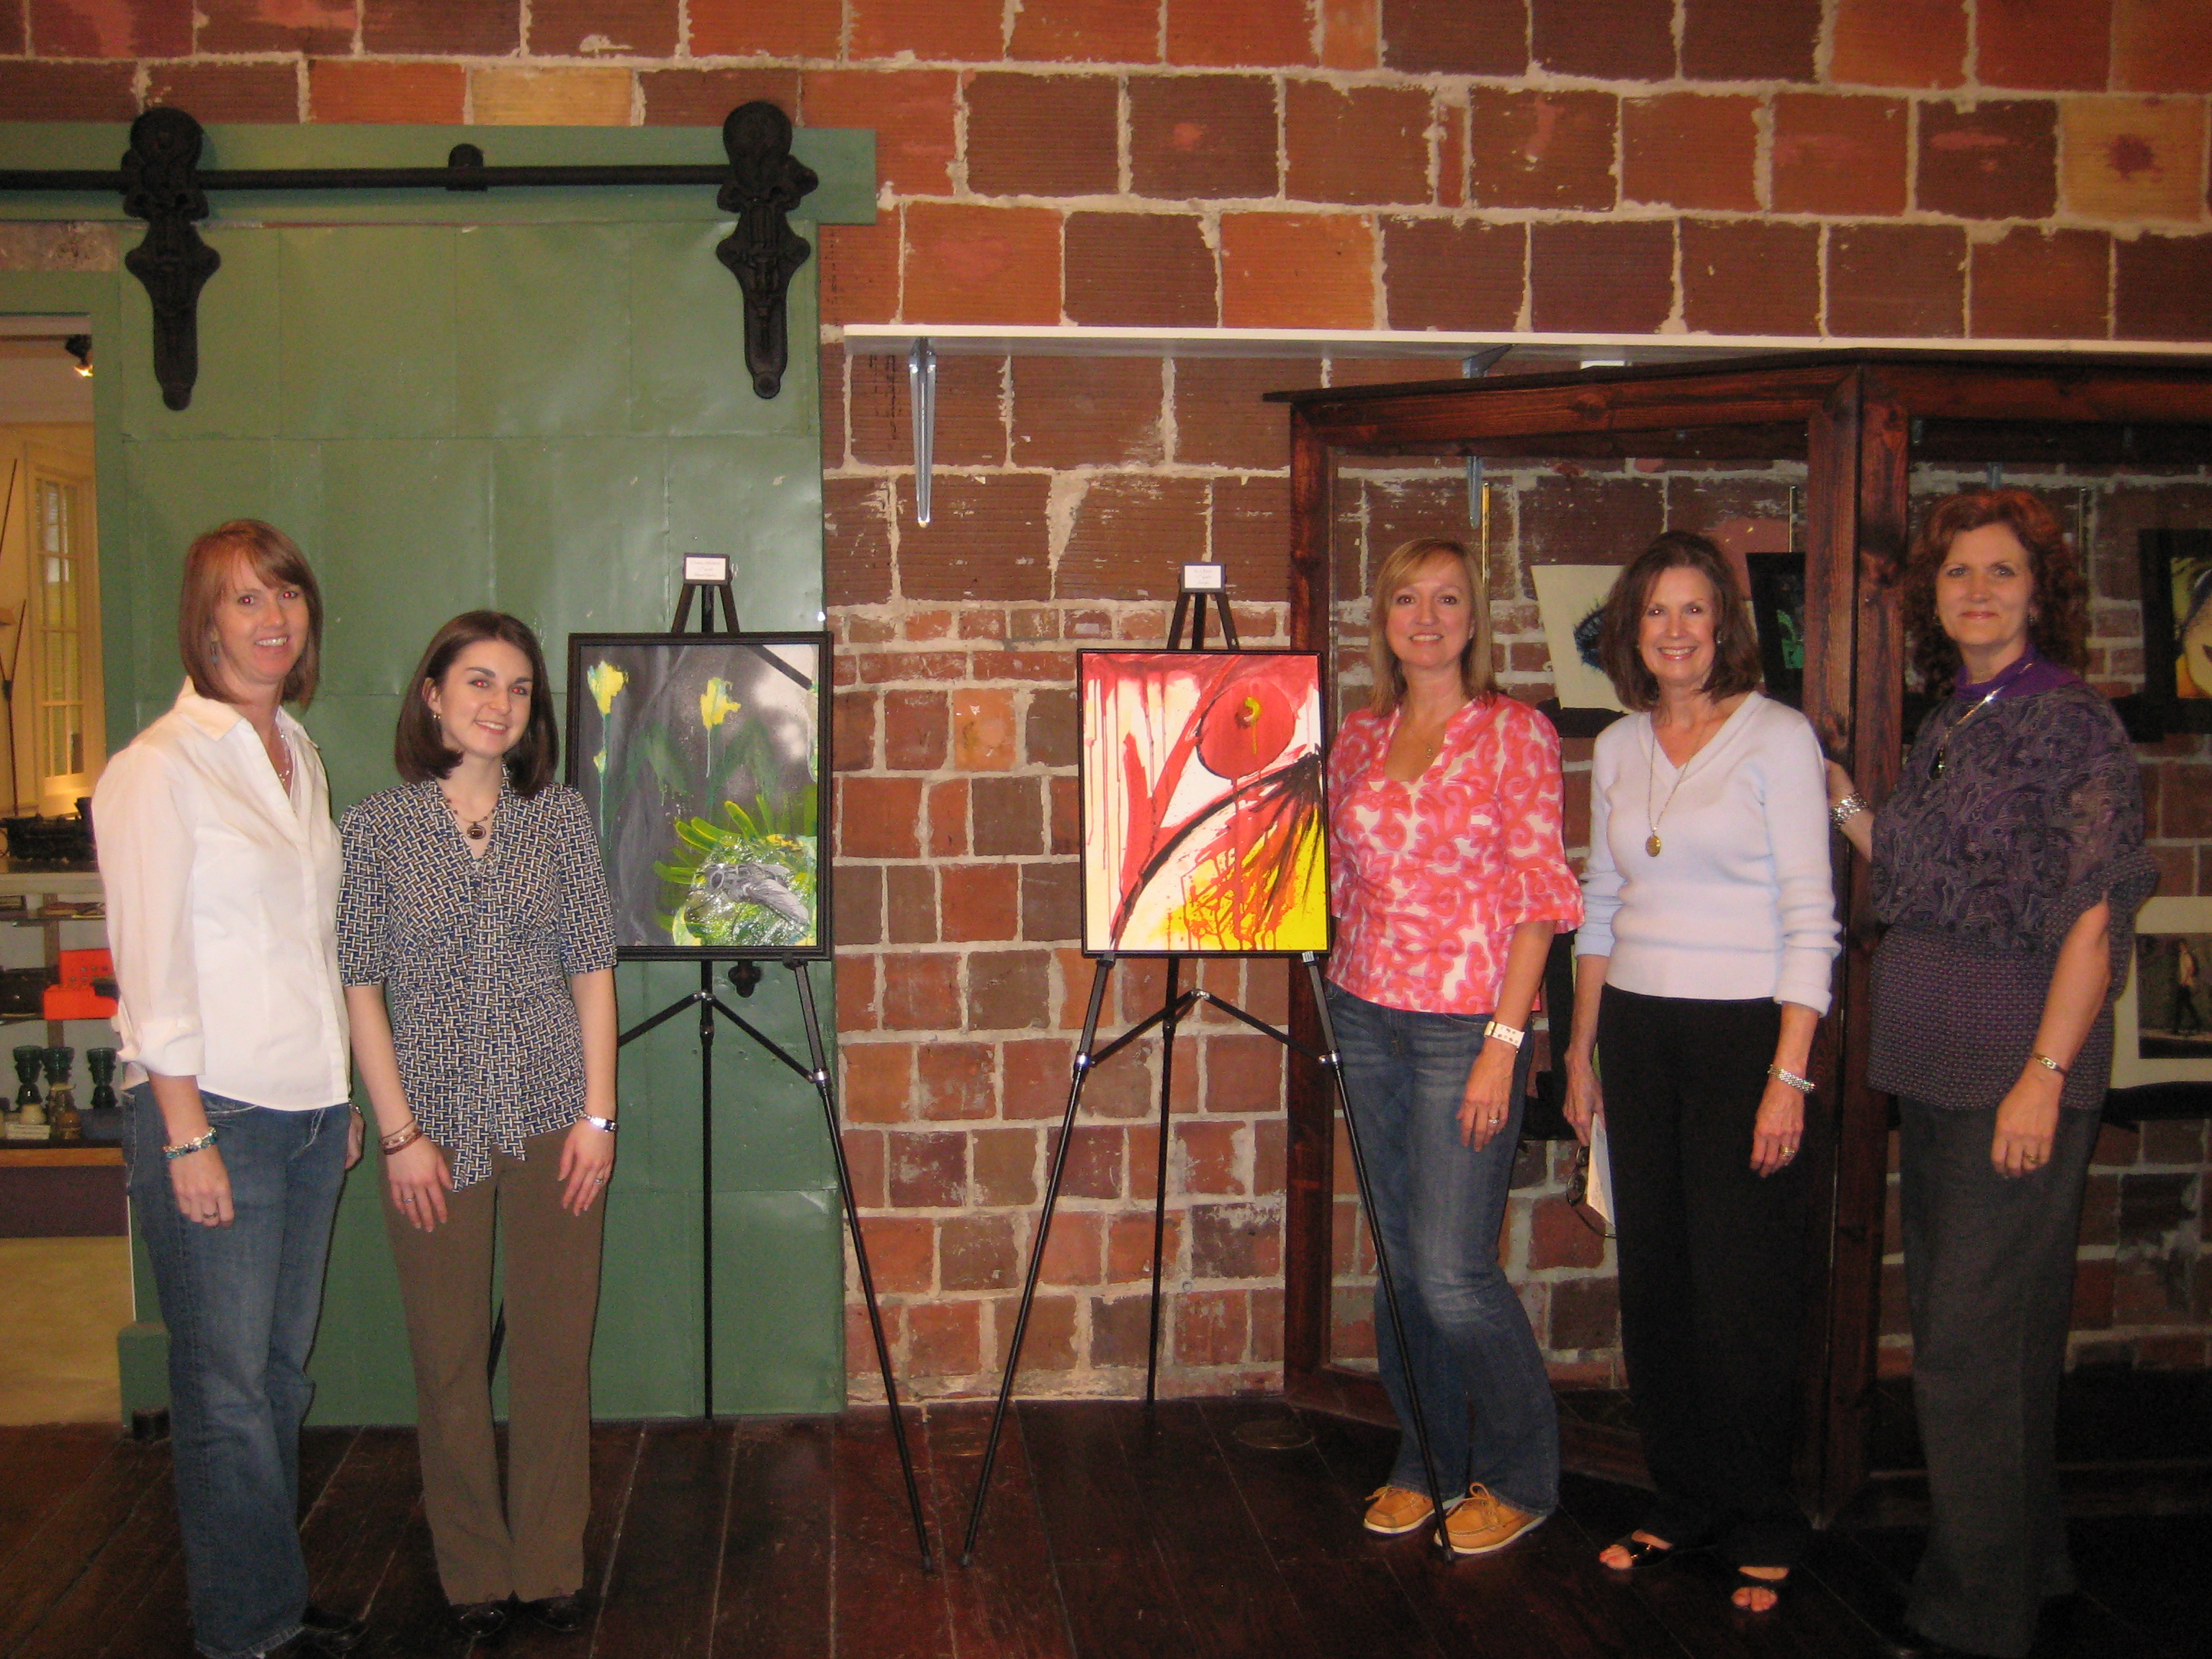 Youth Art Show at Heritage Station Museum